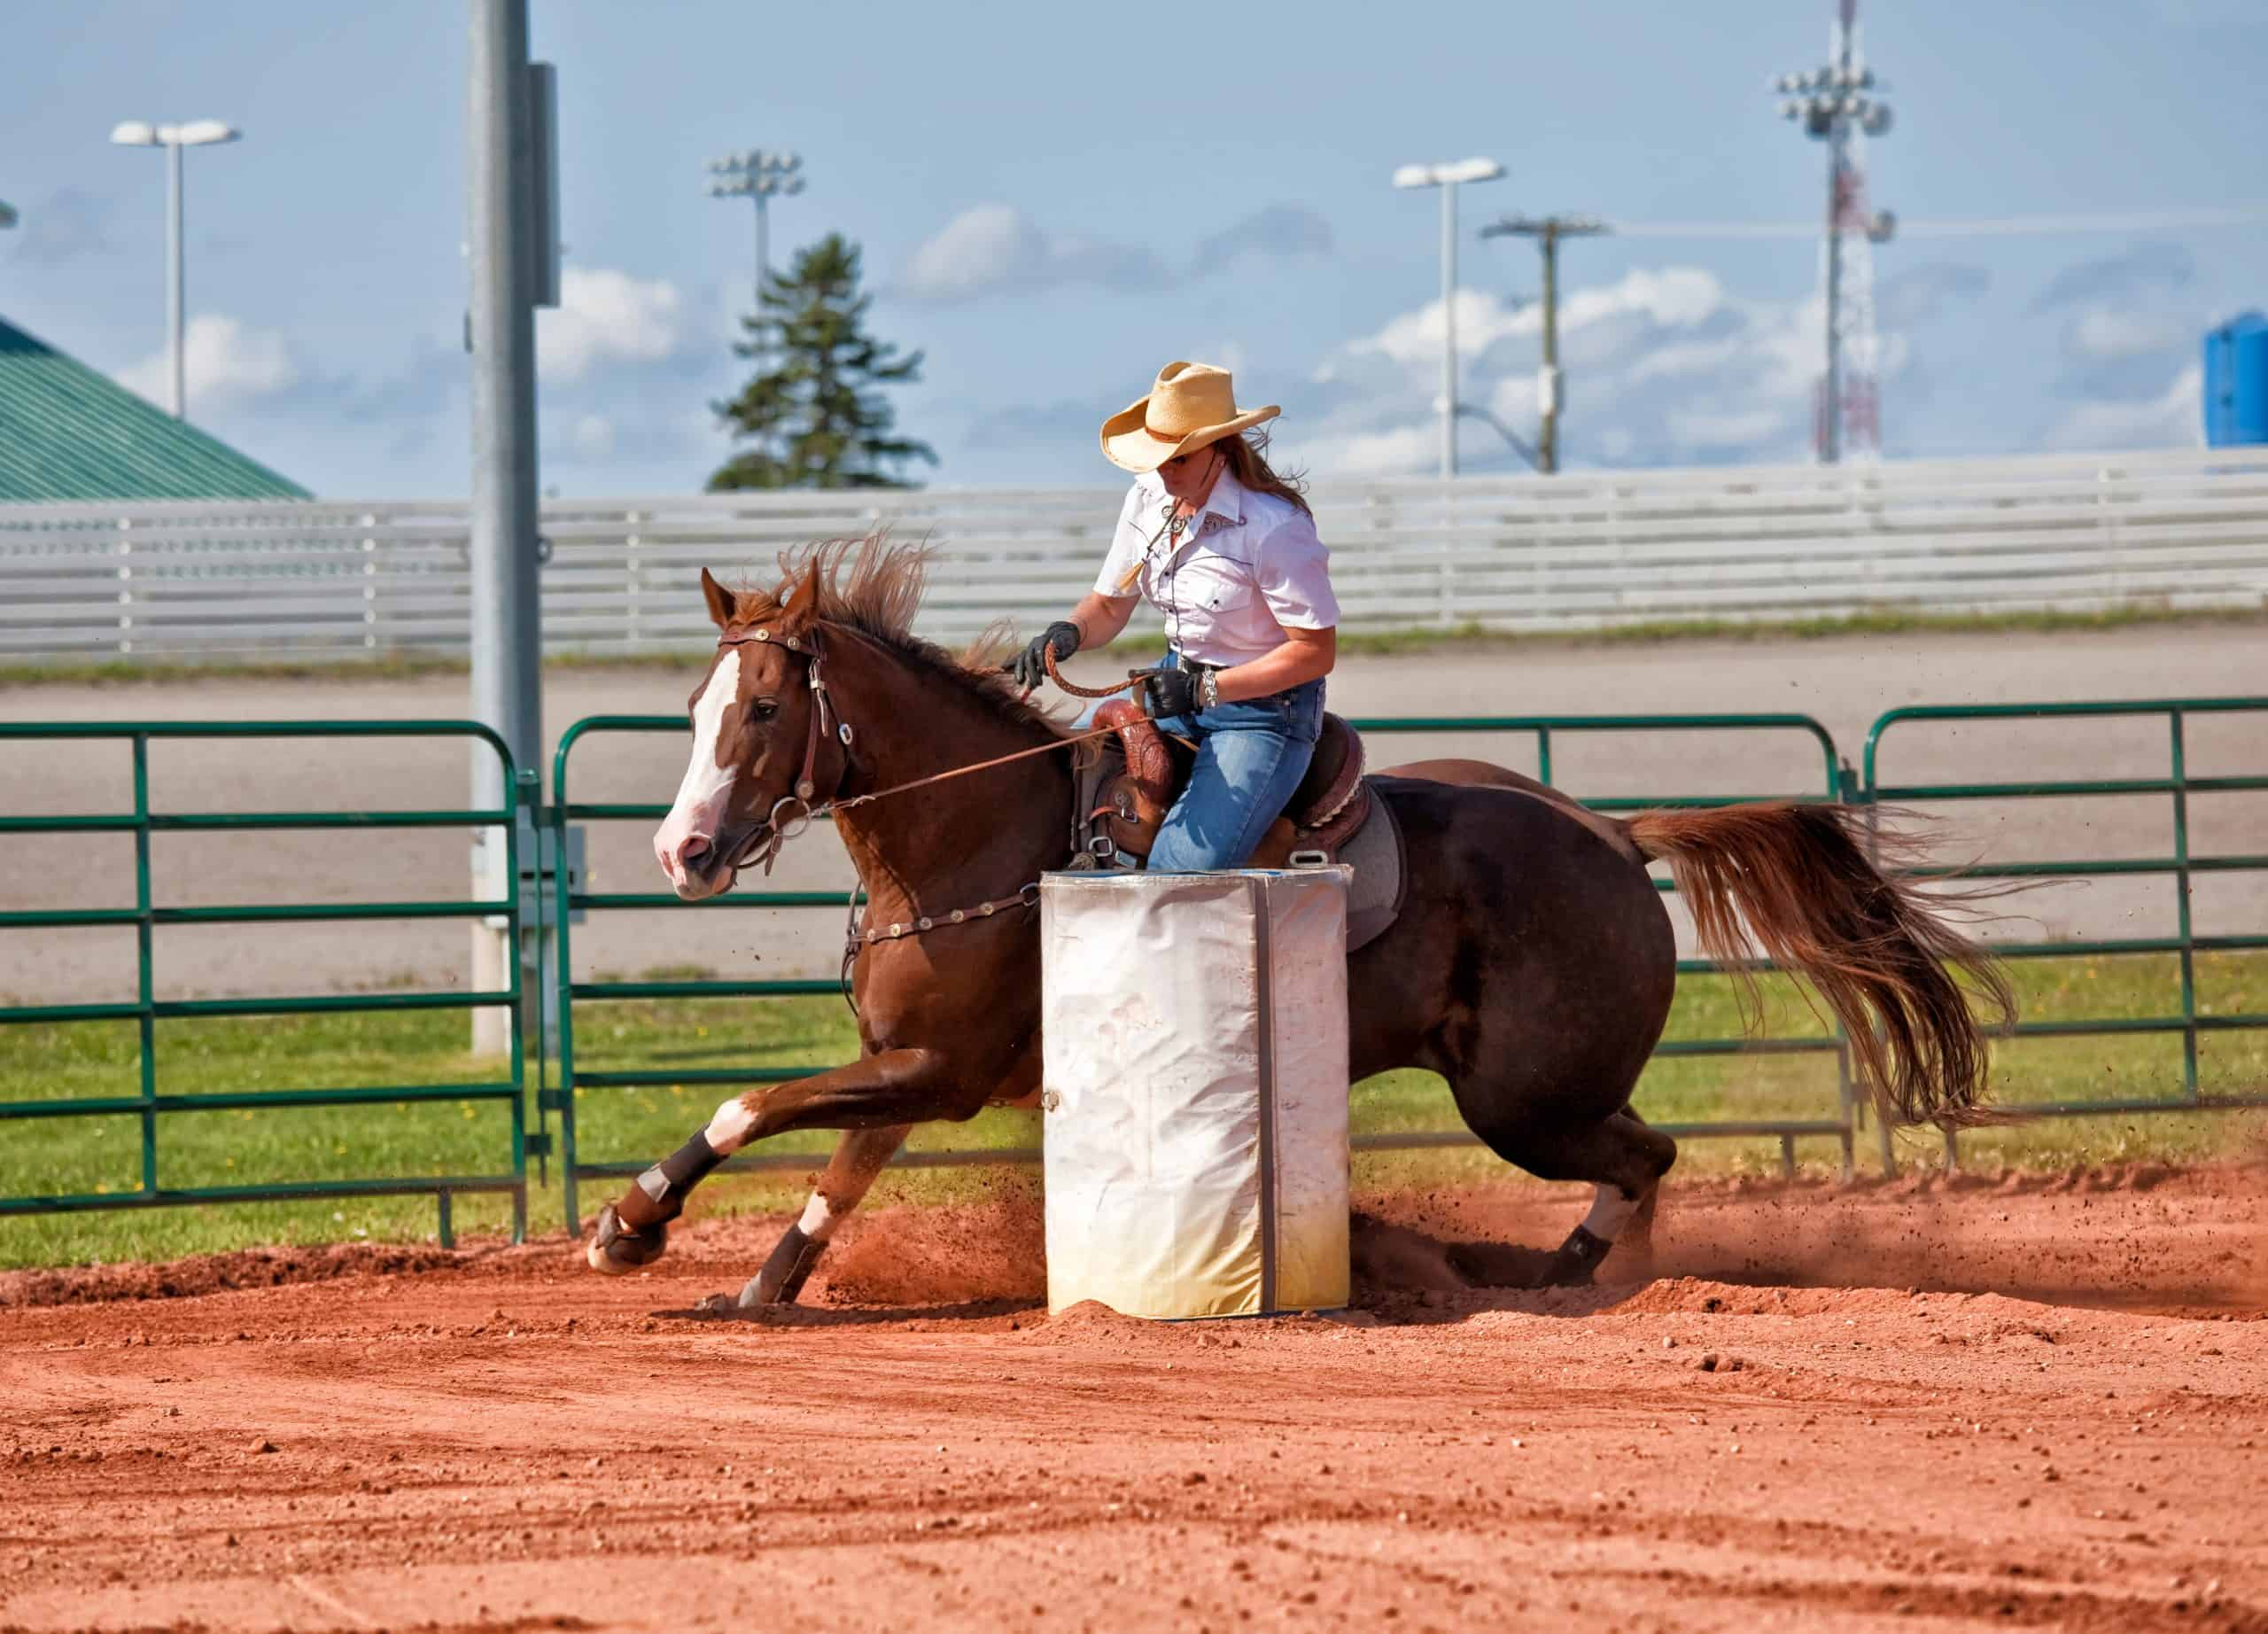 barrel racing for beginners woman riding a horse